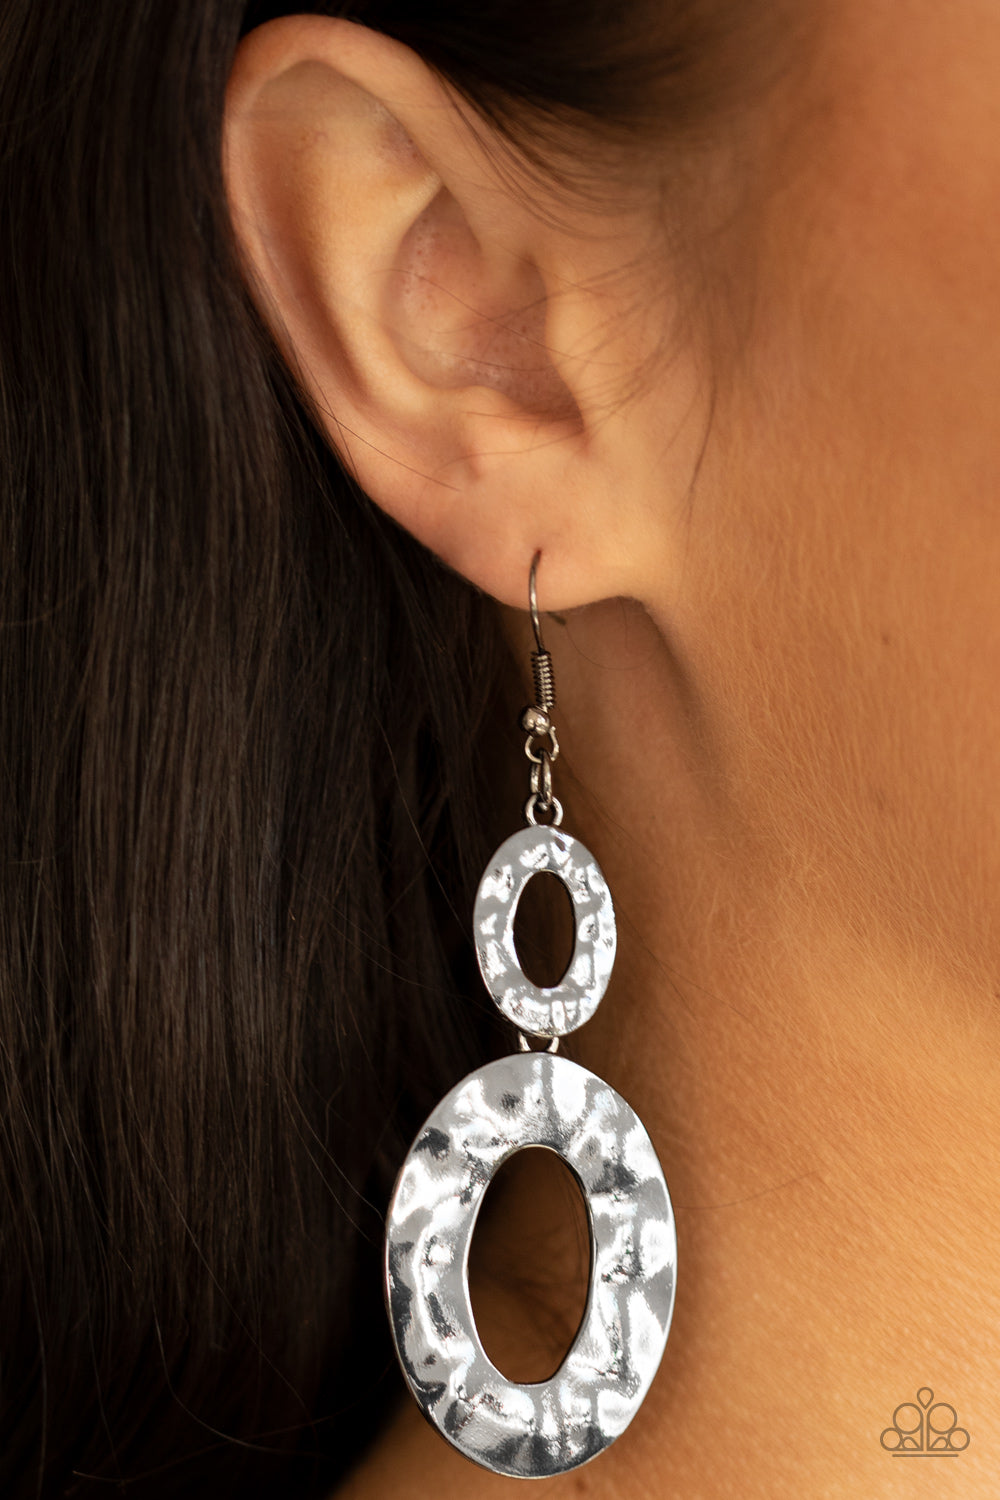 Bring On The Basics - Black Earrings - Paparazzi Accessories